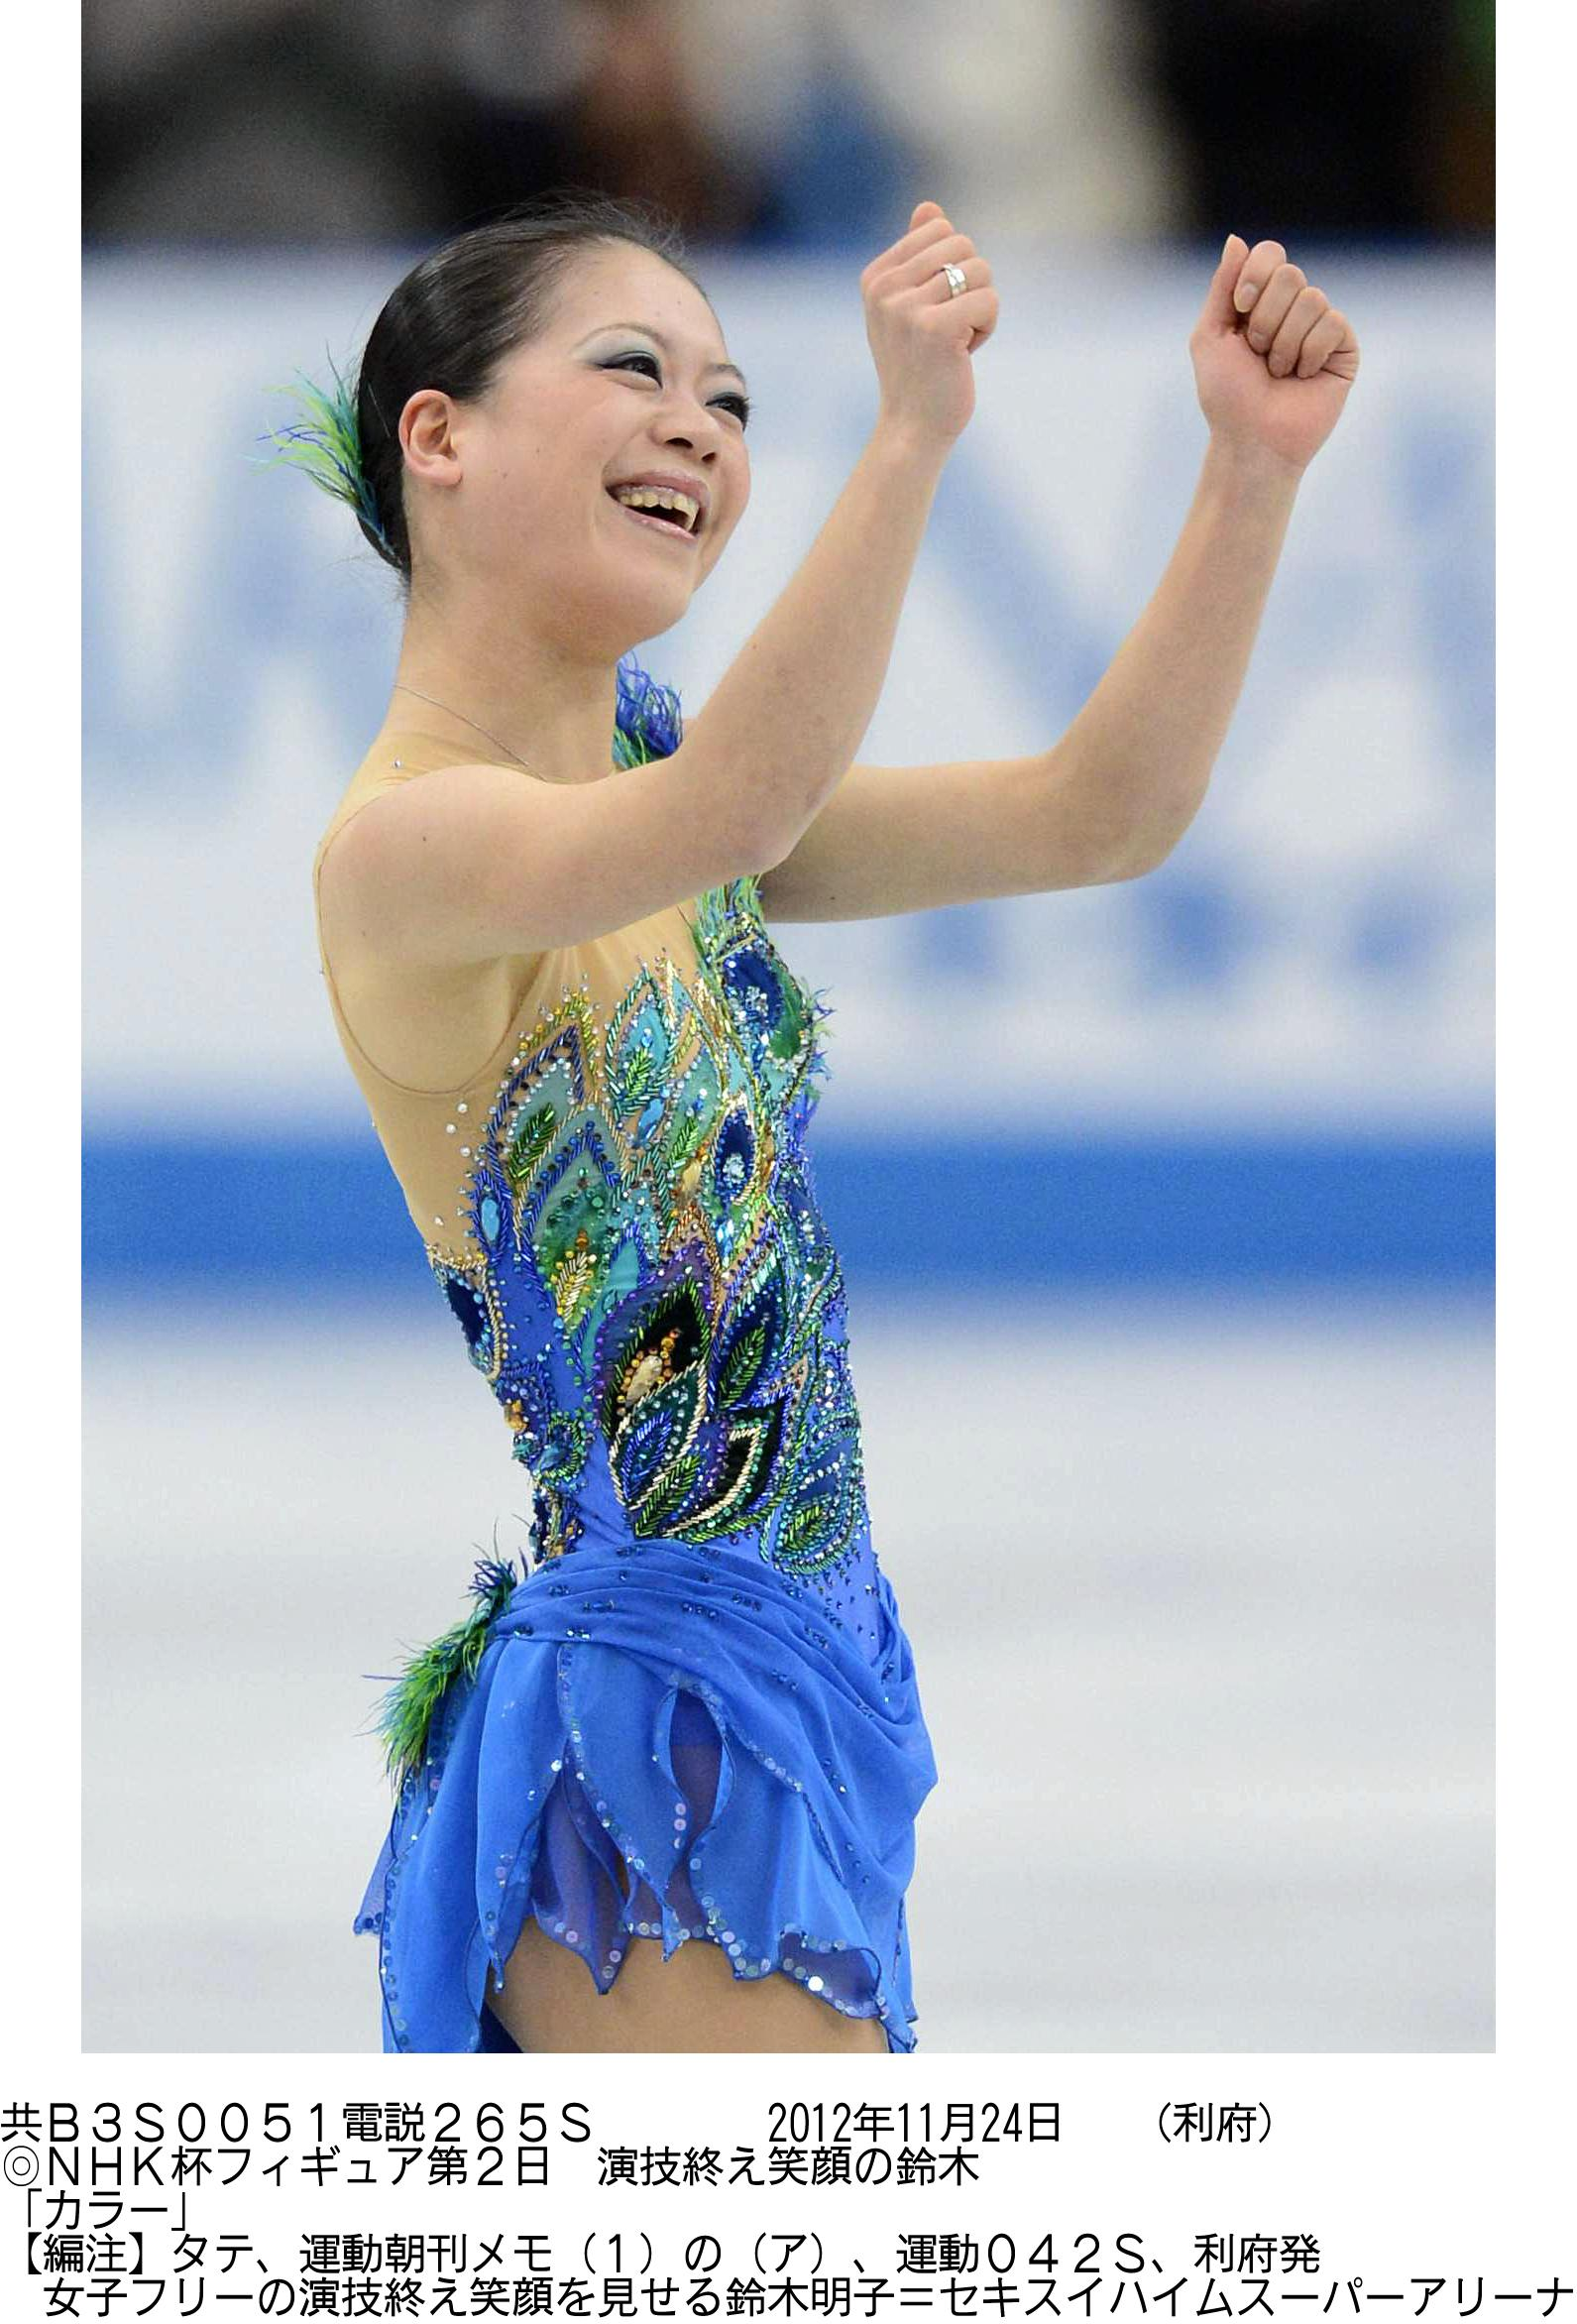 Winning form: Yuzuru Hanyu performs in the men's free skate on Saturday at the NHK Trophy. | KYODO